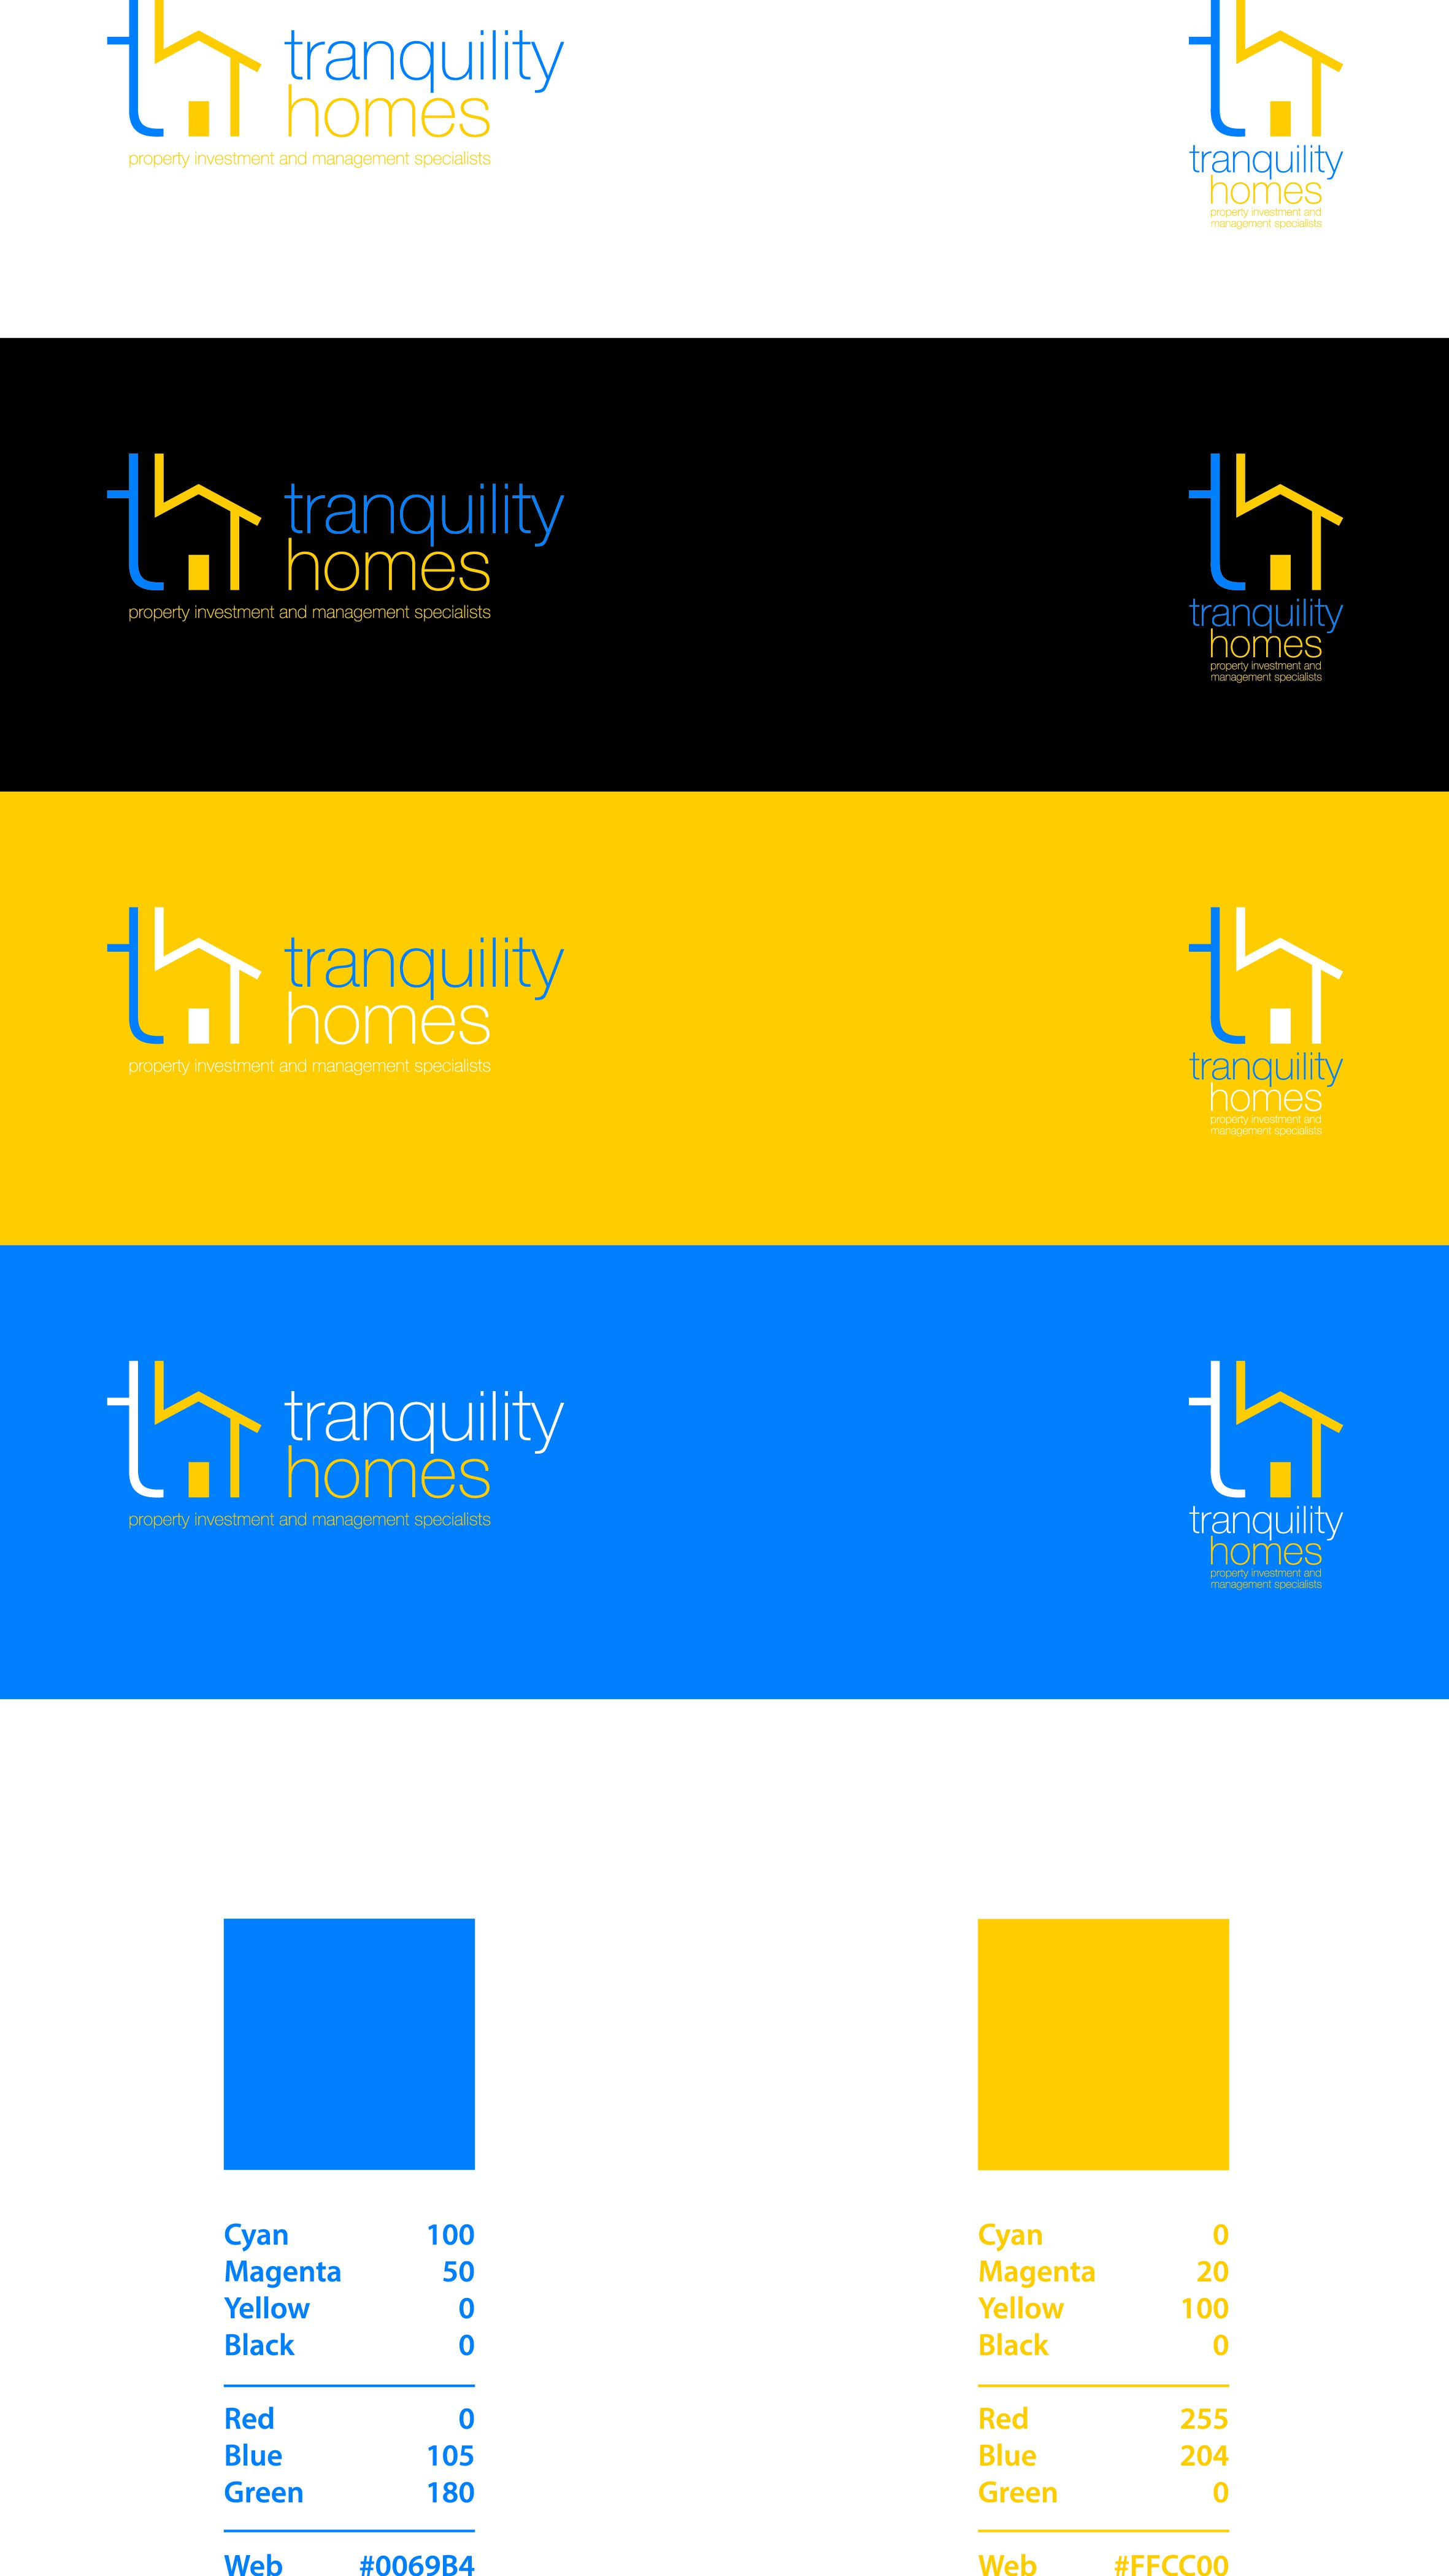 Design a modern and inviting logo for Tranquility Homes